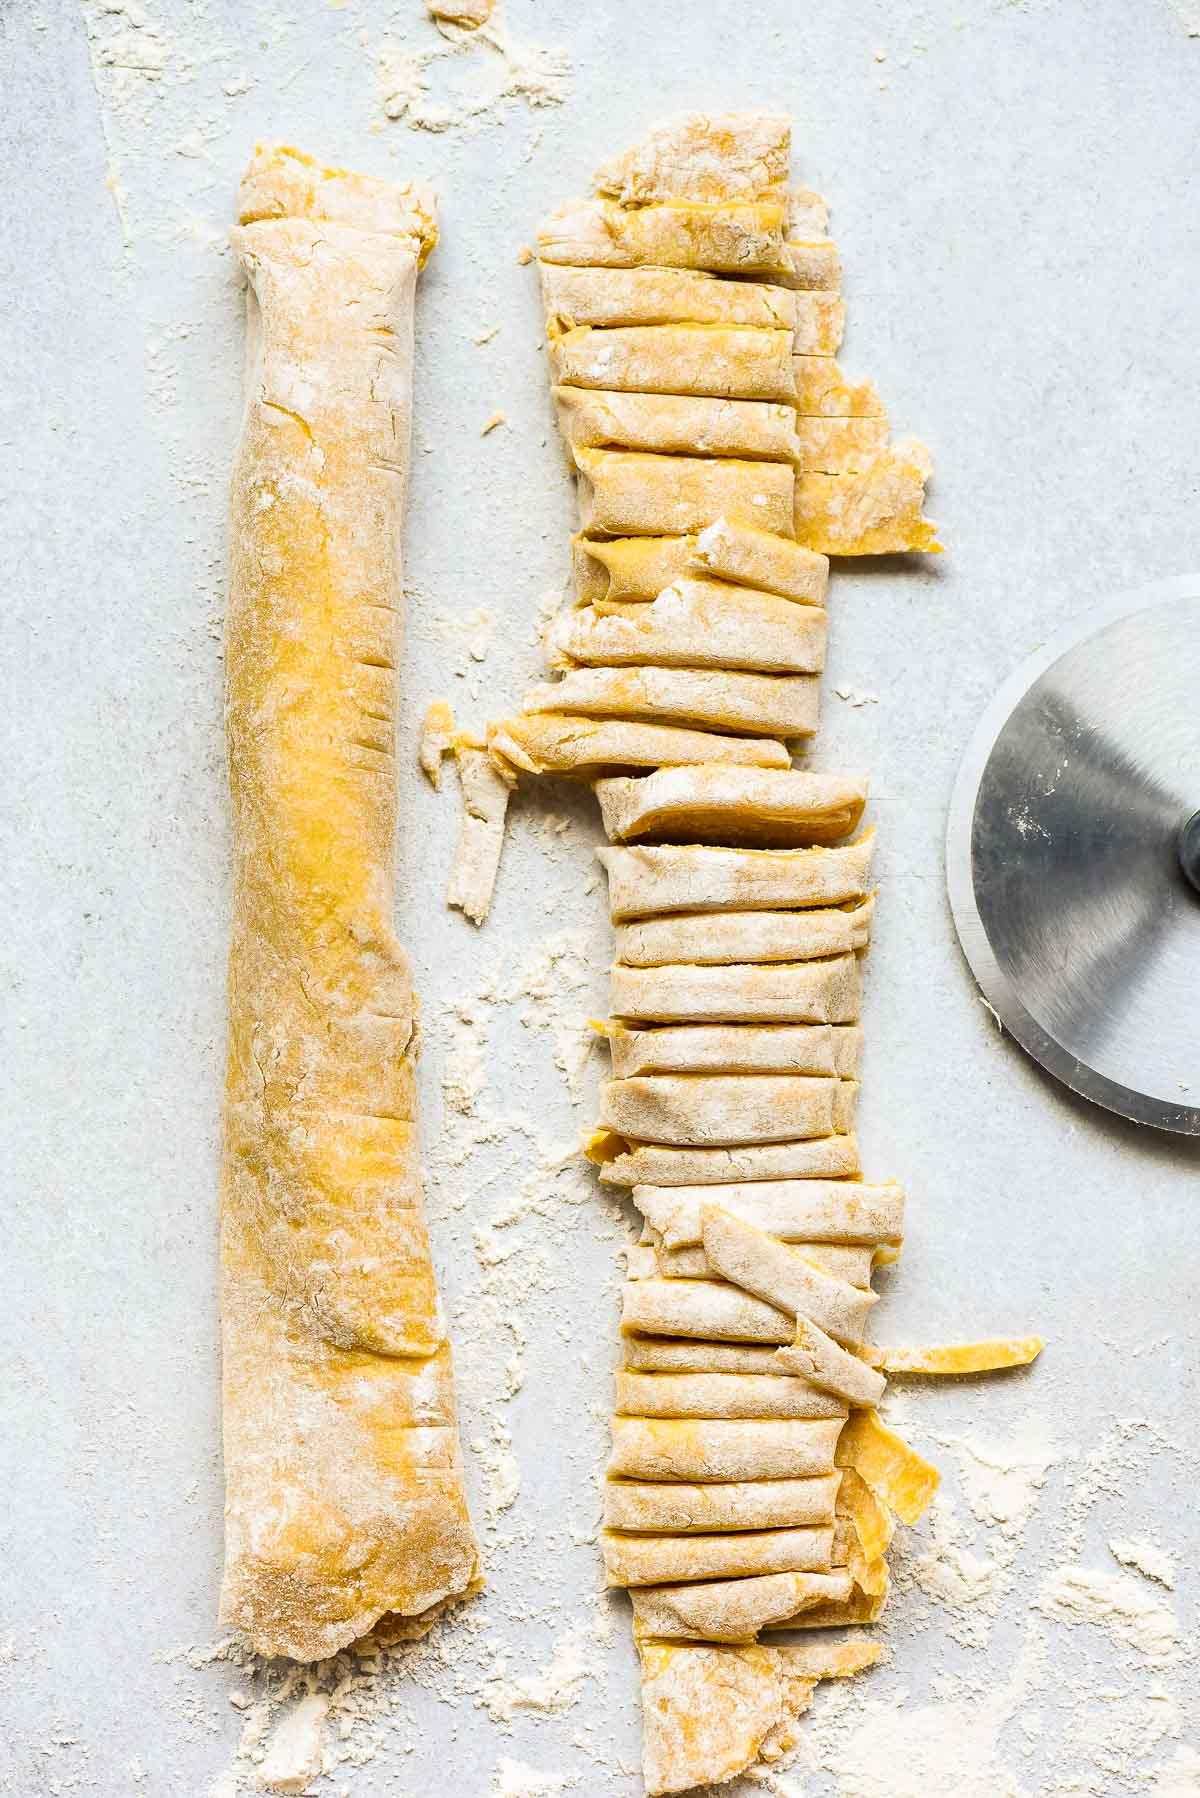 Homemade Egg noodle dough rolled up and cut into strips